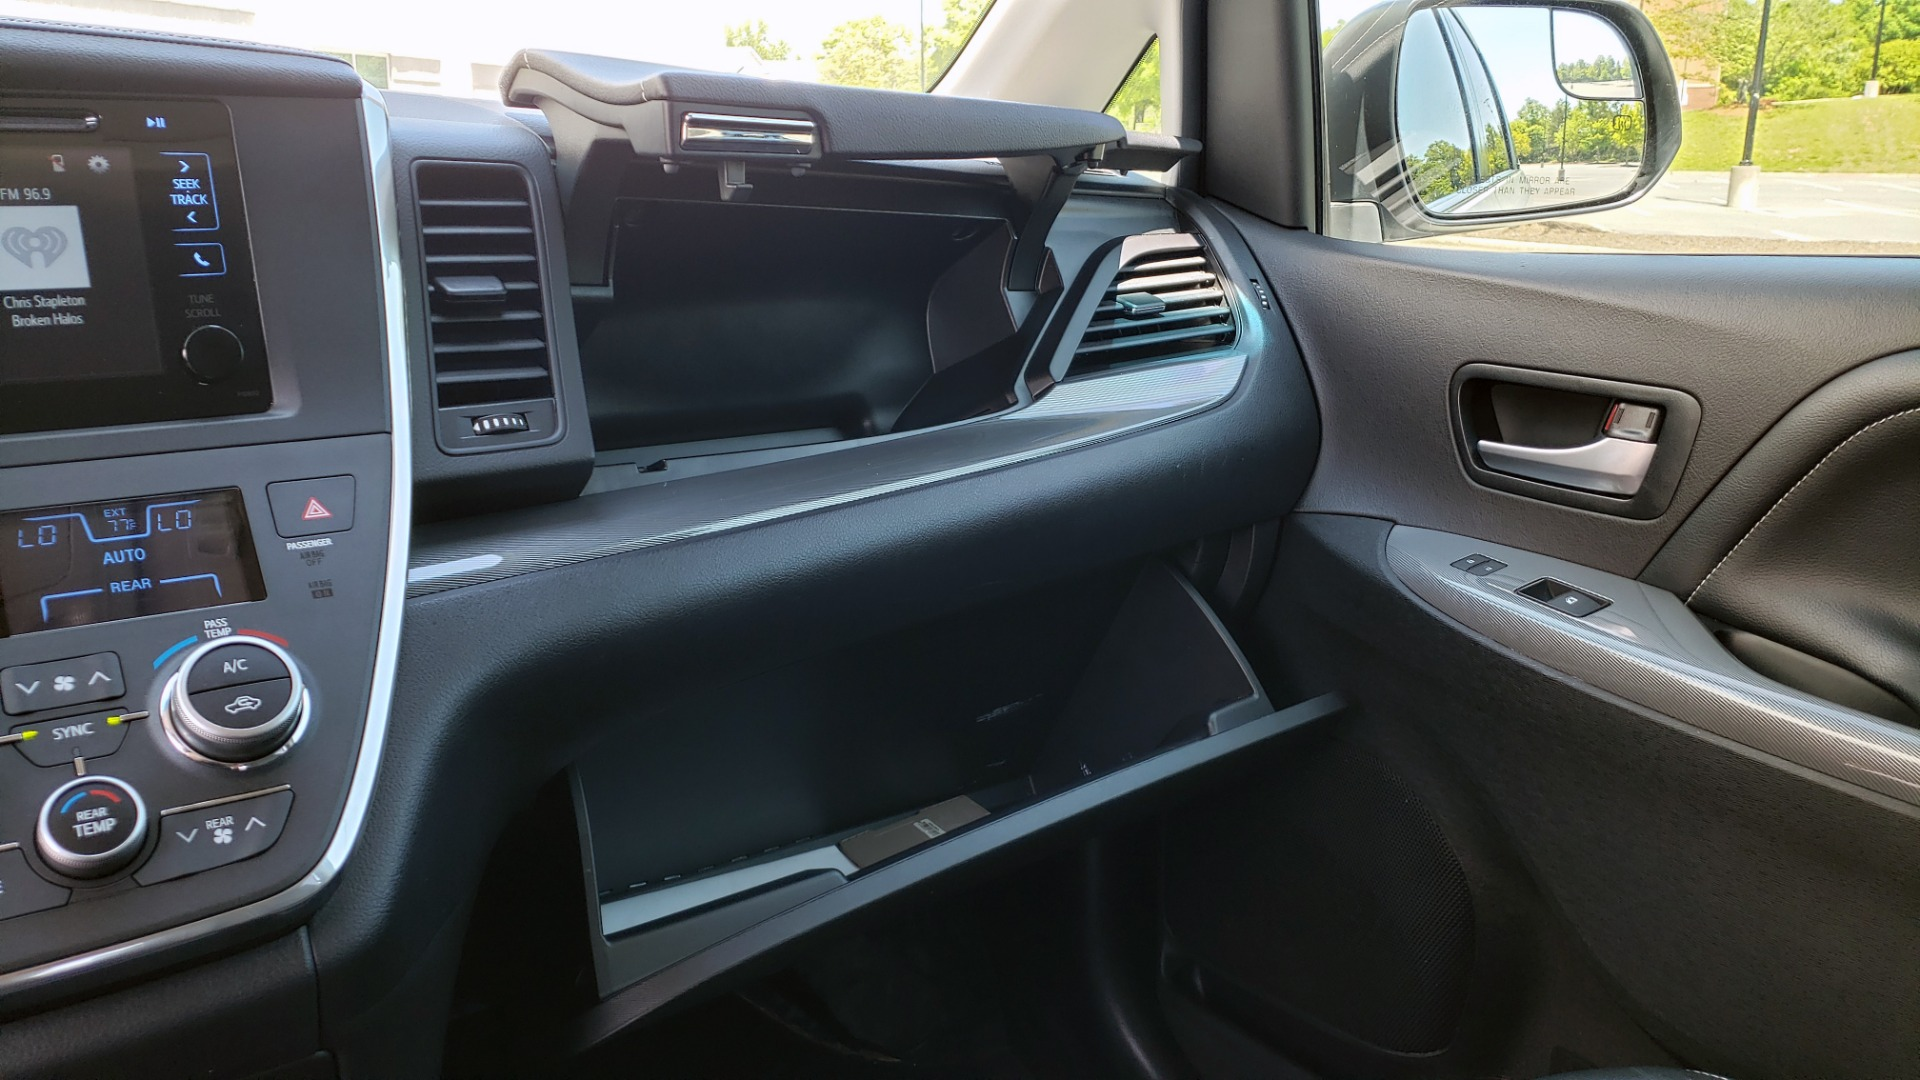 Used 2015 Toyota SIENNA SE 3.5L / FWD / 3-ROWS / 8-PASS / SUNROOF / DVD / REARVIEW for sale $21,995 at Formula Imports in Charlotte NC 28227 51